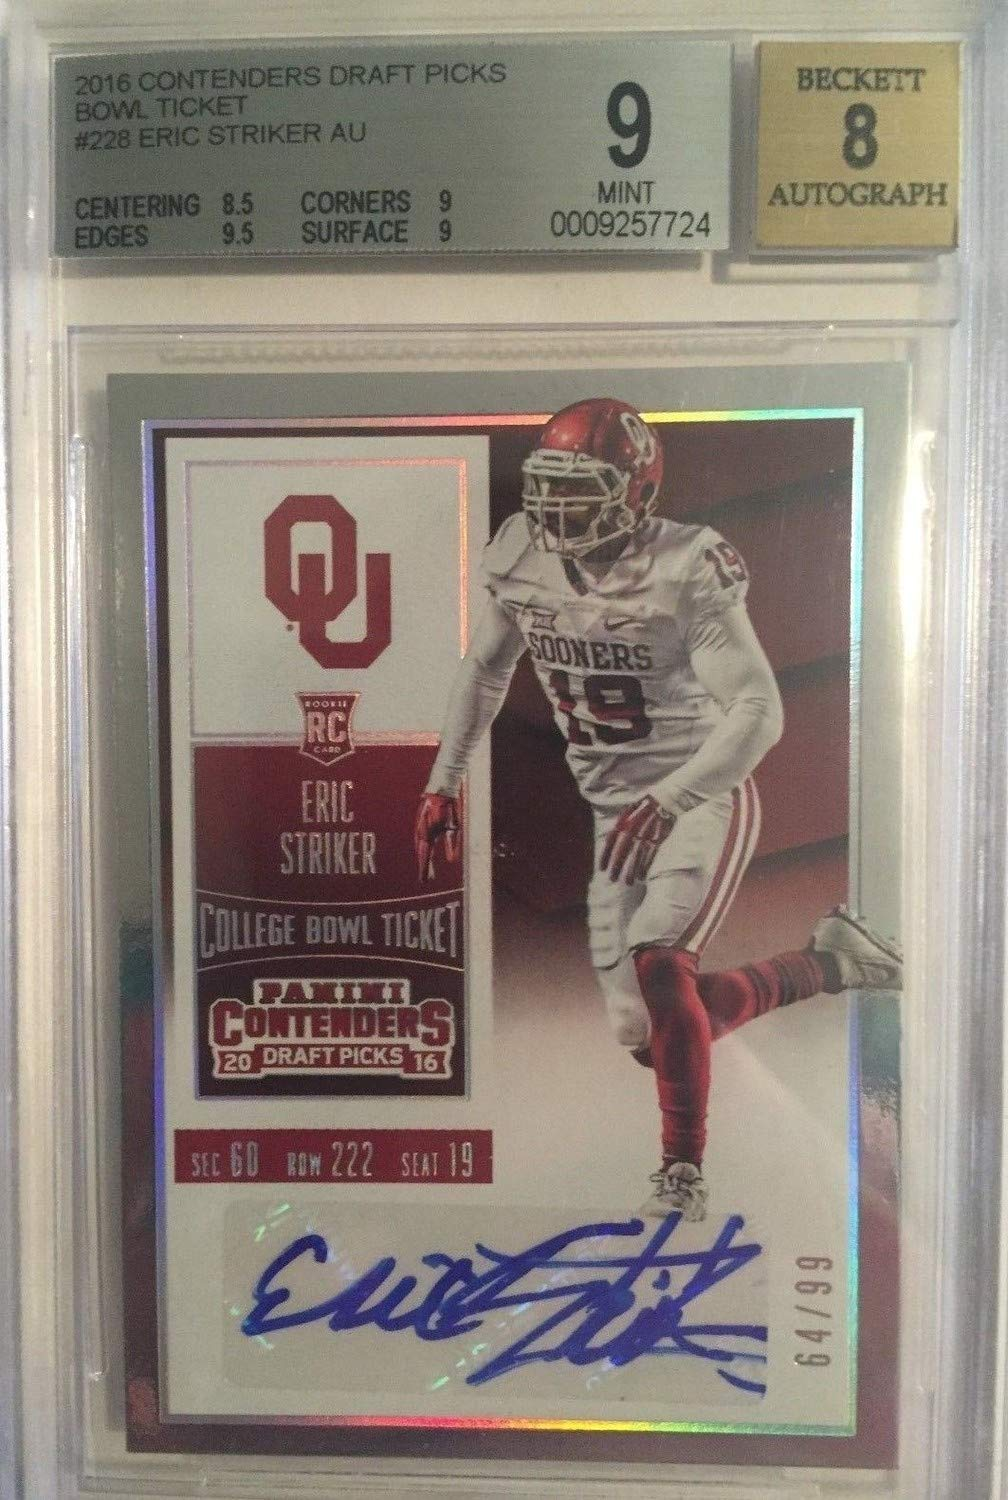 2016 Contenders College Bowl Ticket Ou Autographed Signed Eric Striker Rc /99 Bgs 9 Certified Authentic